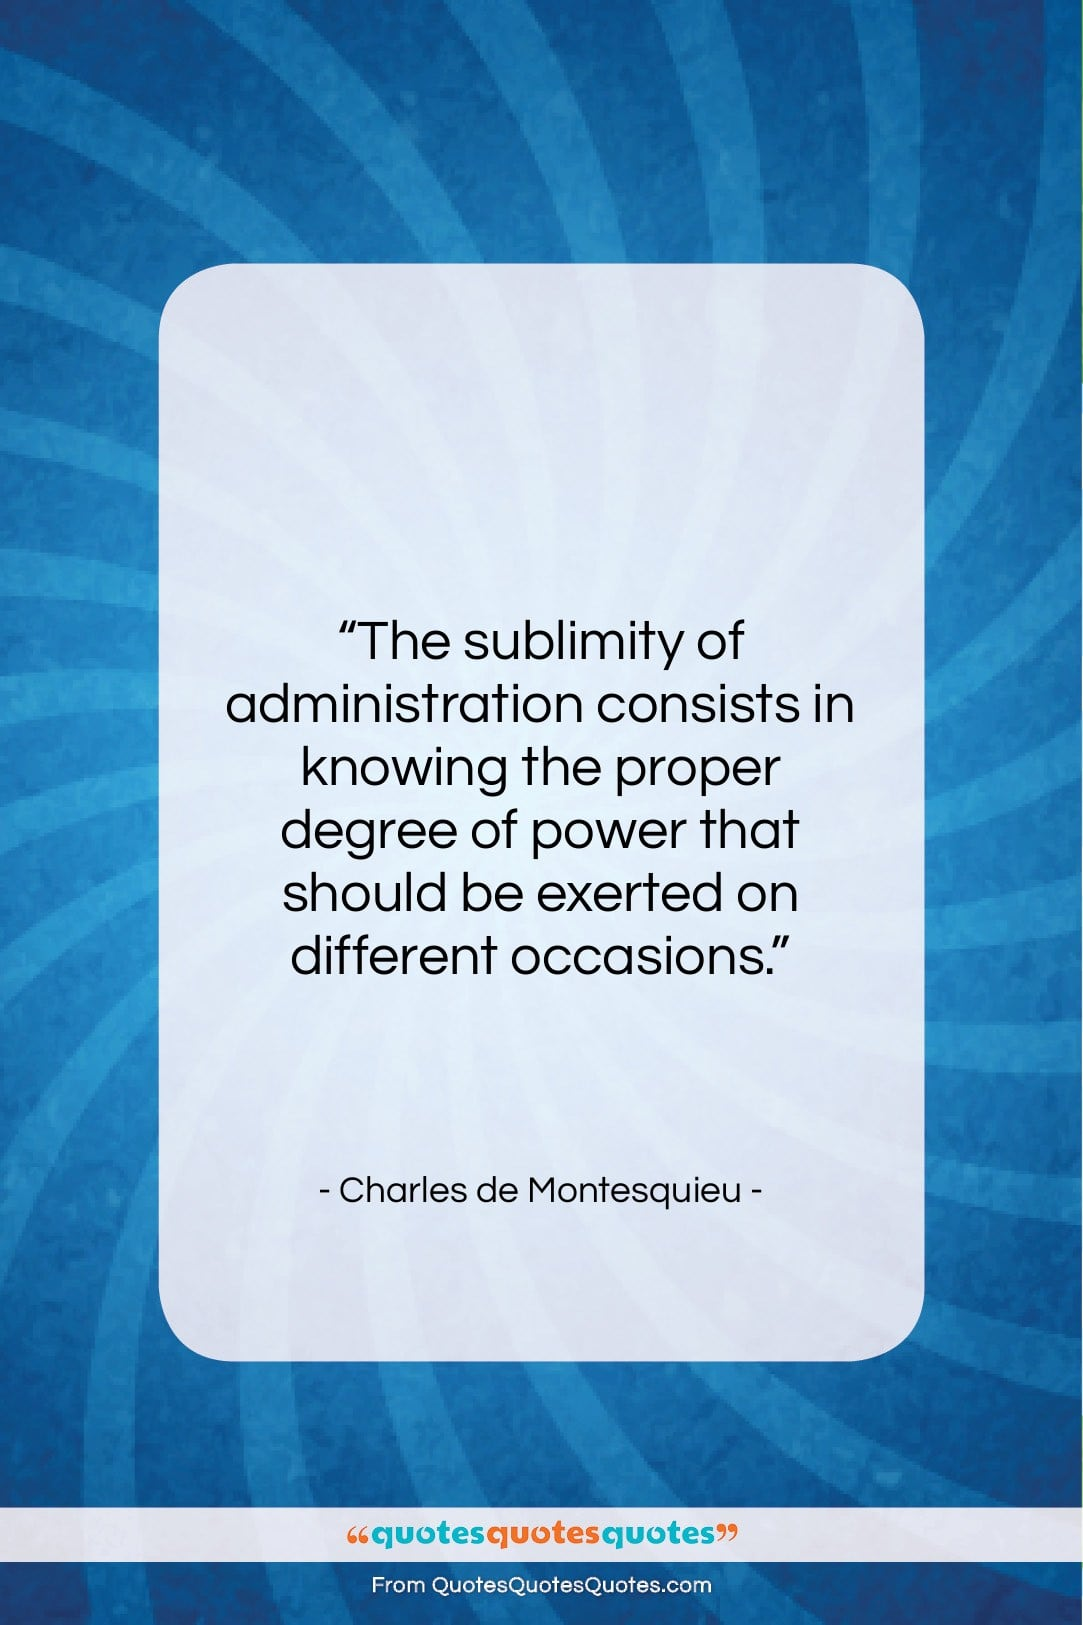 """Charles de Montesquieu quote: """"The sublimity of administration consists in knowing…""""- at QuotesQuotesQuotes.com"""